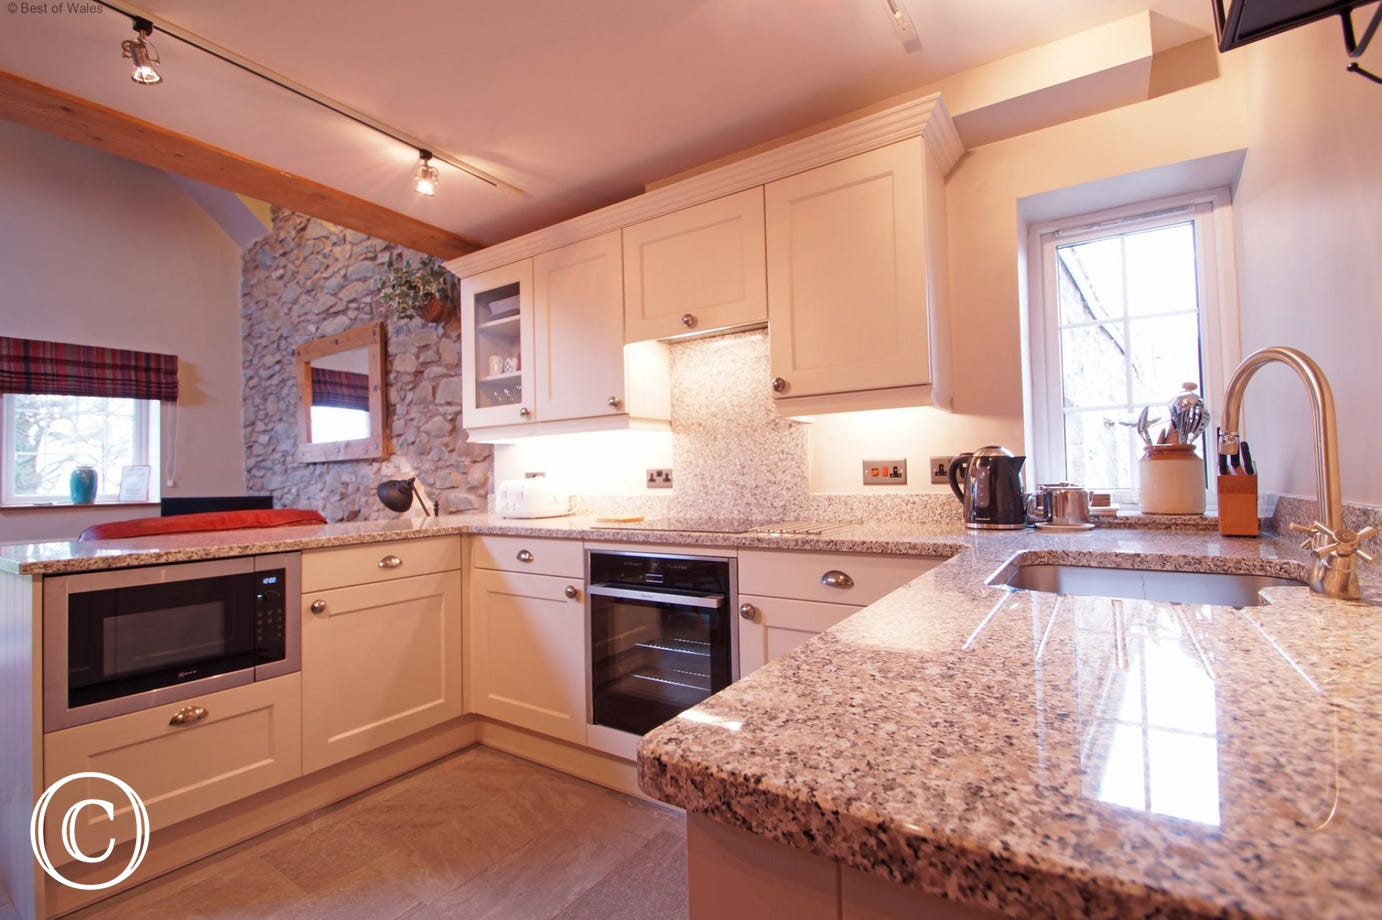 Newly fitted, fully equipped kitchen